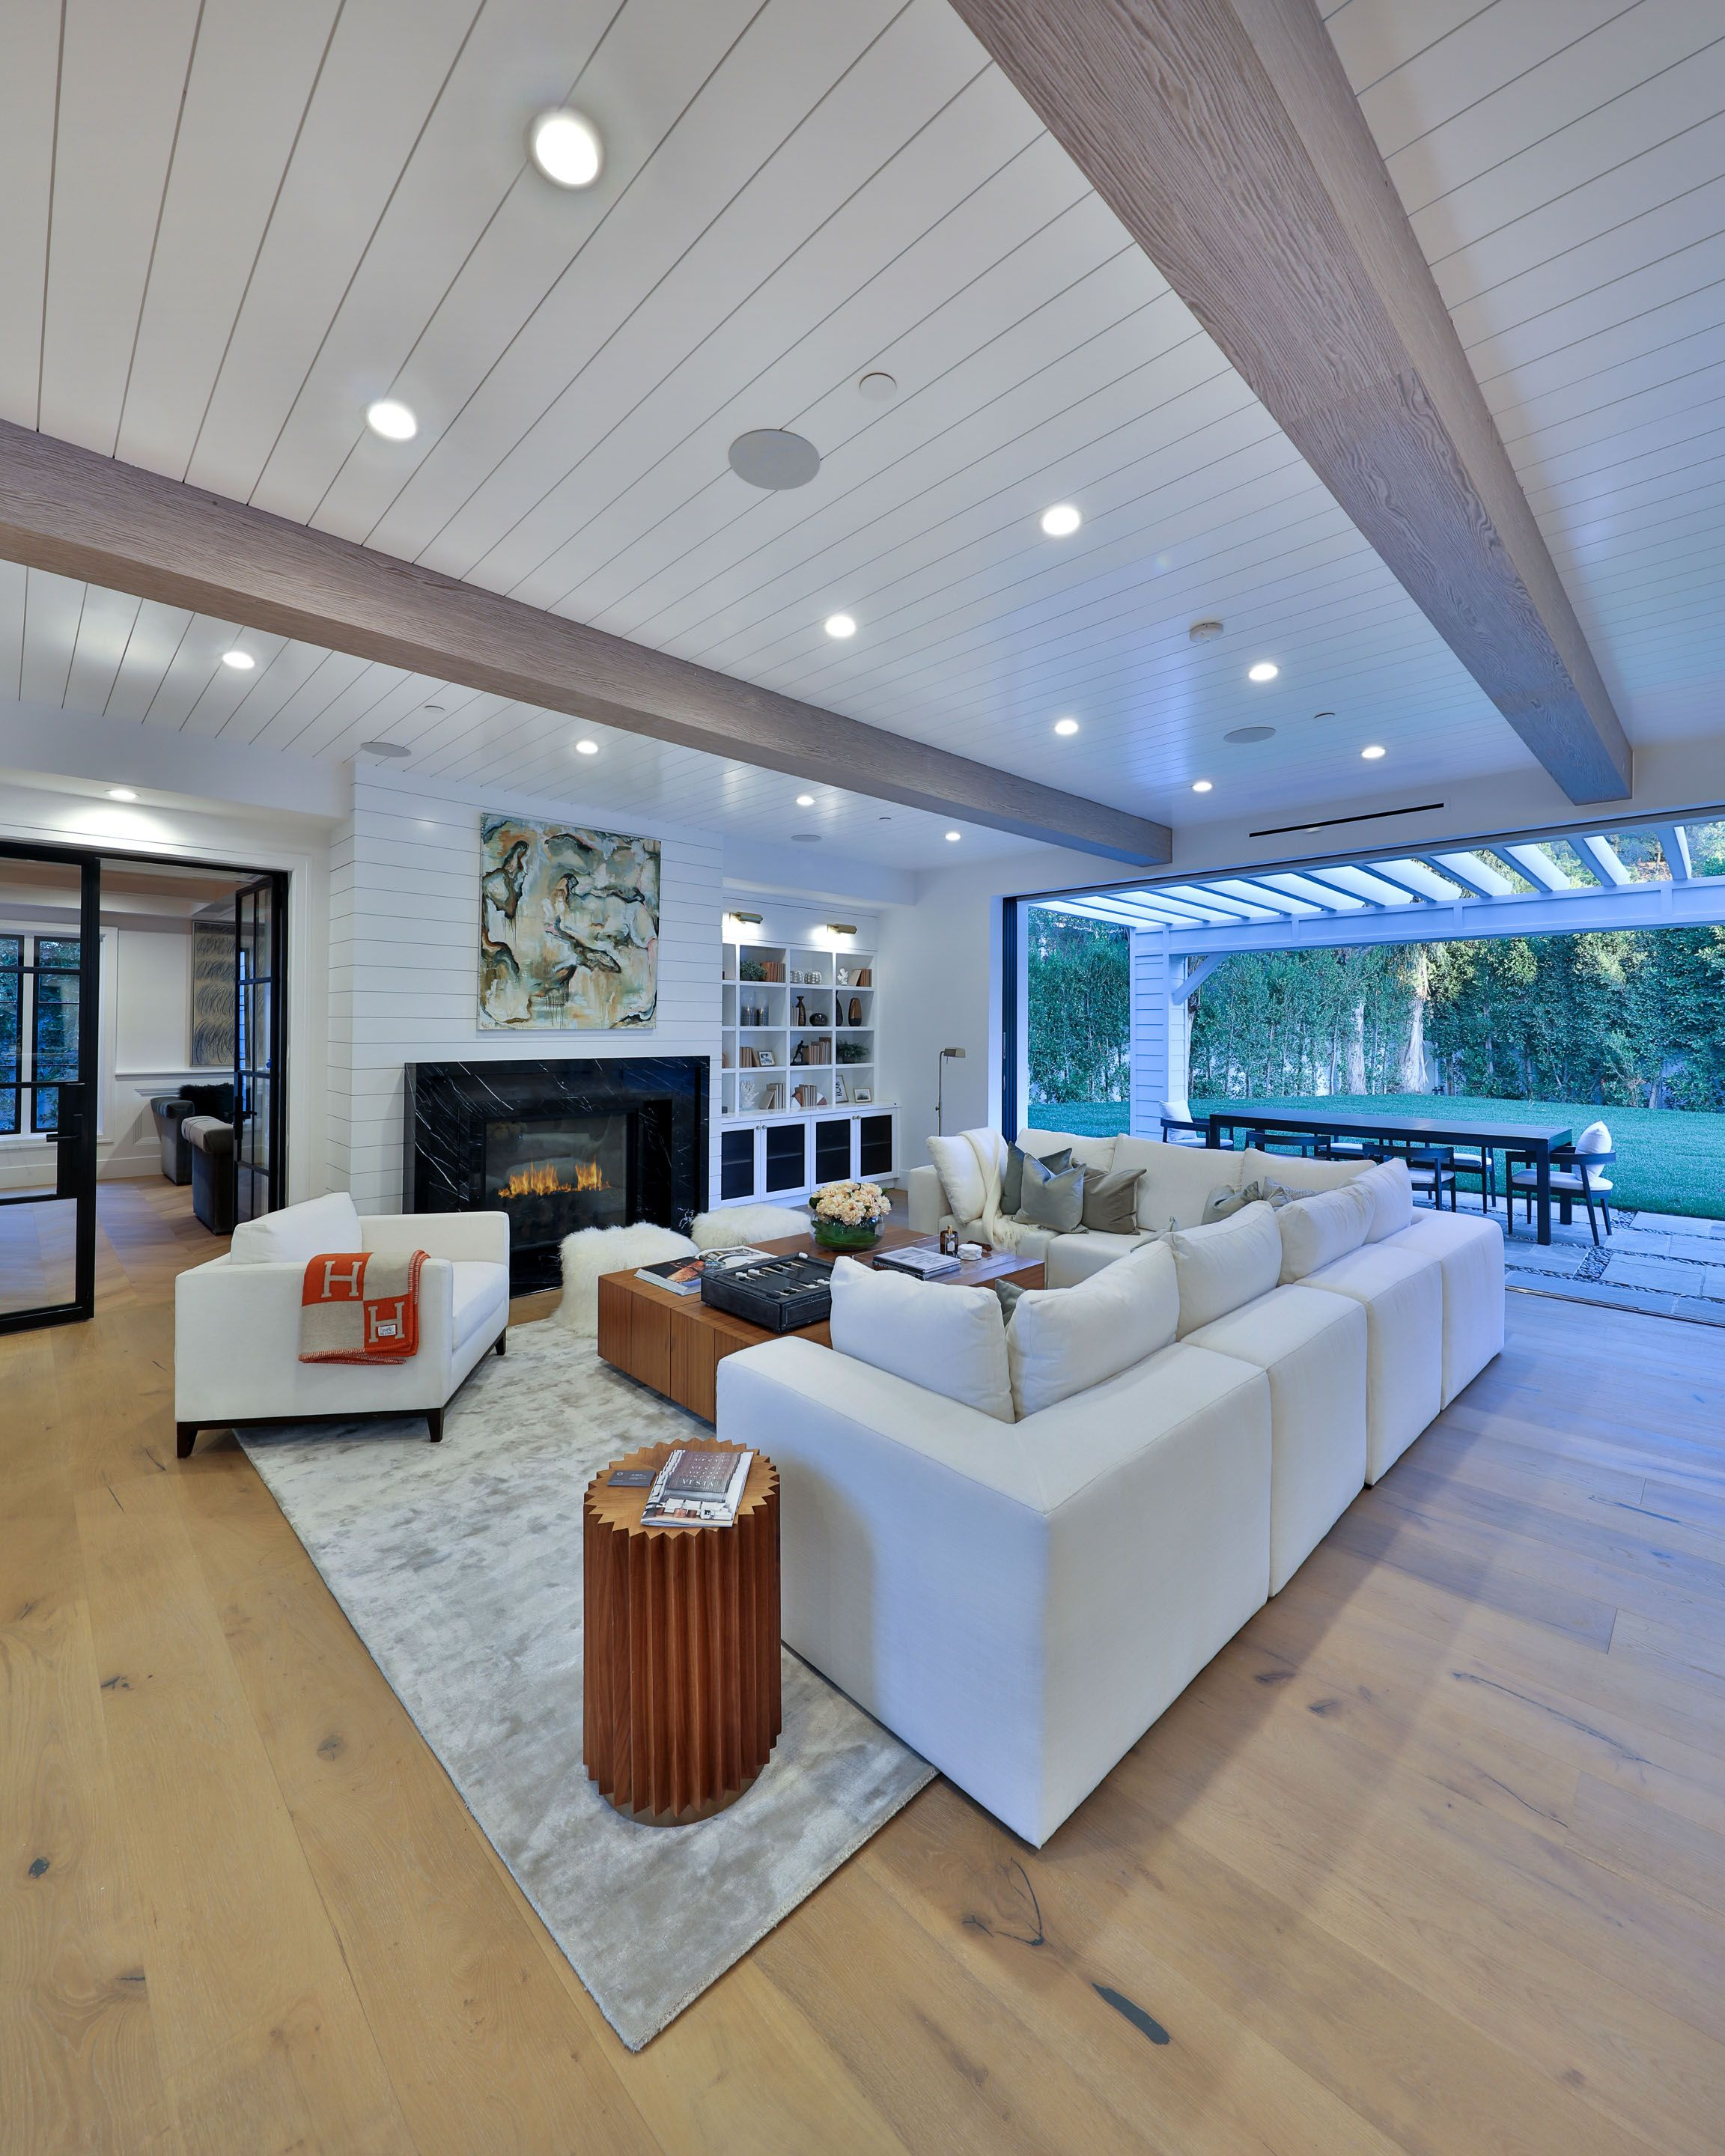 Luxury Modern Farmhouse Living Room With Light Wood Floors And